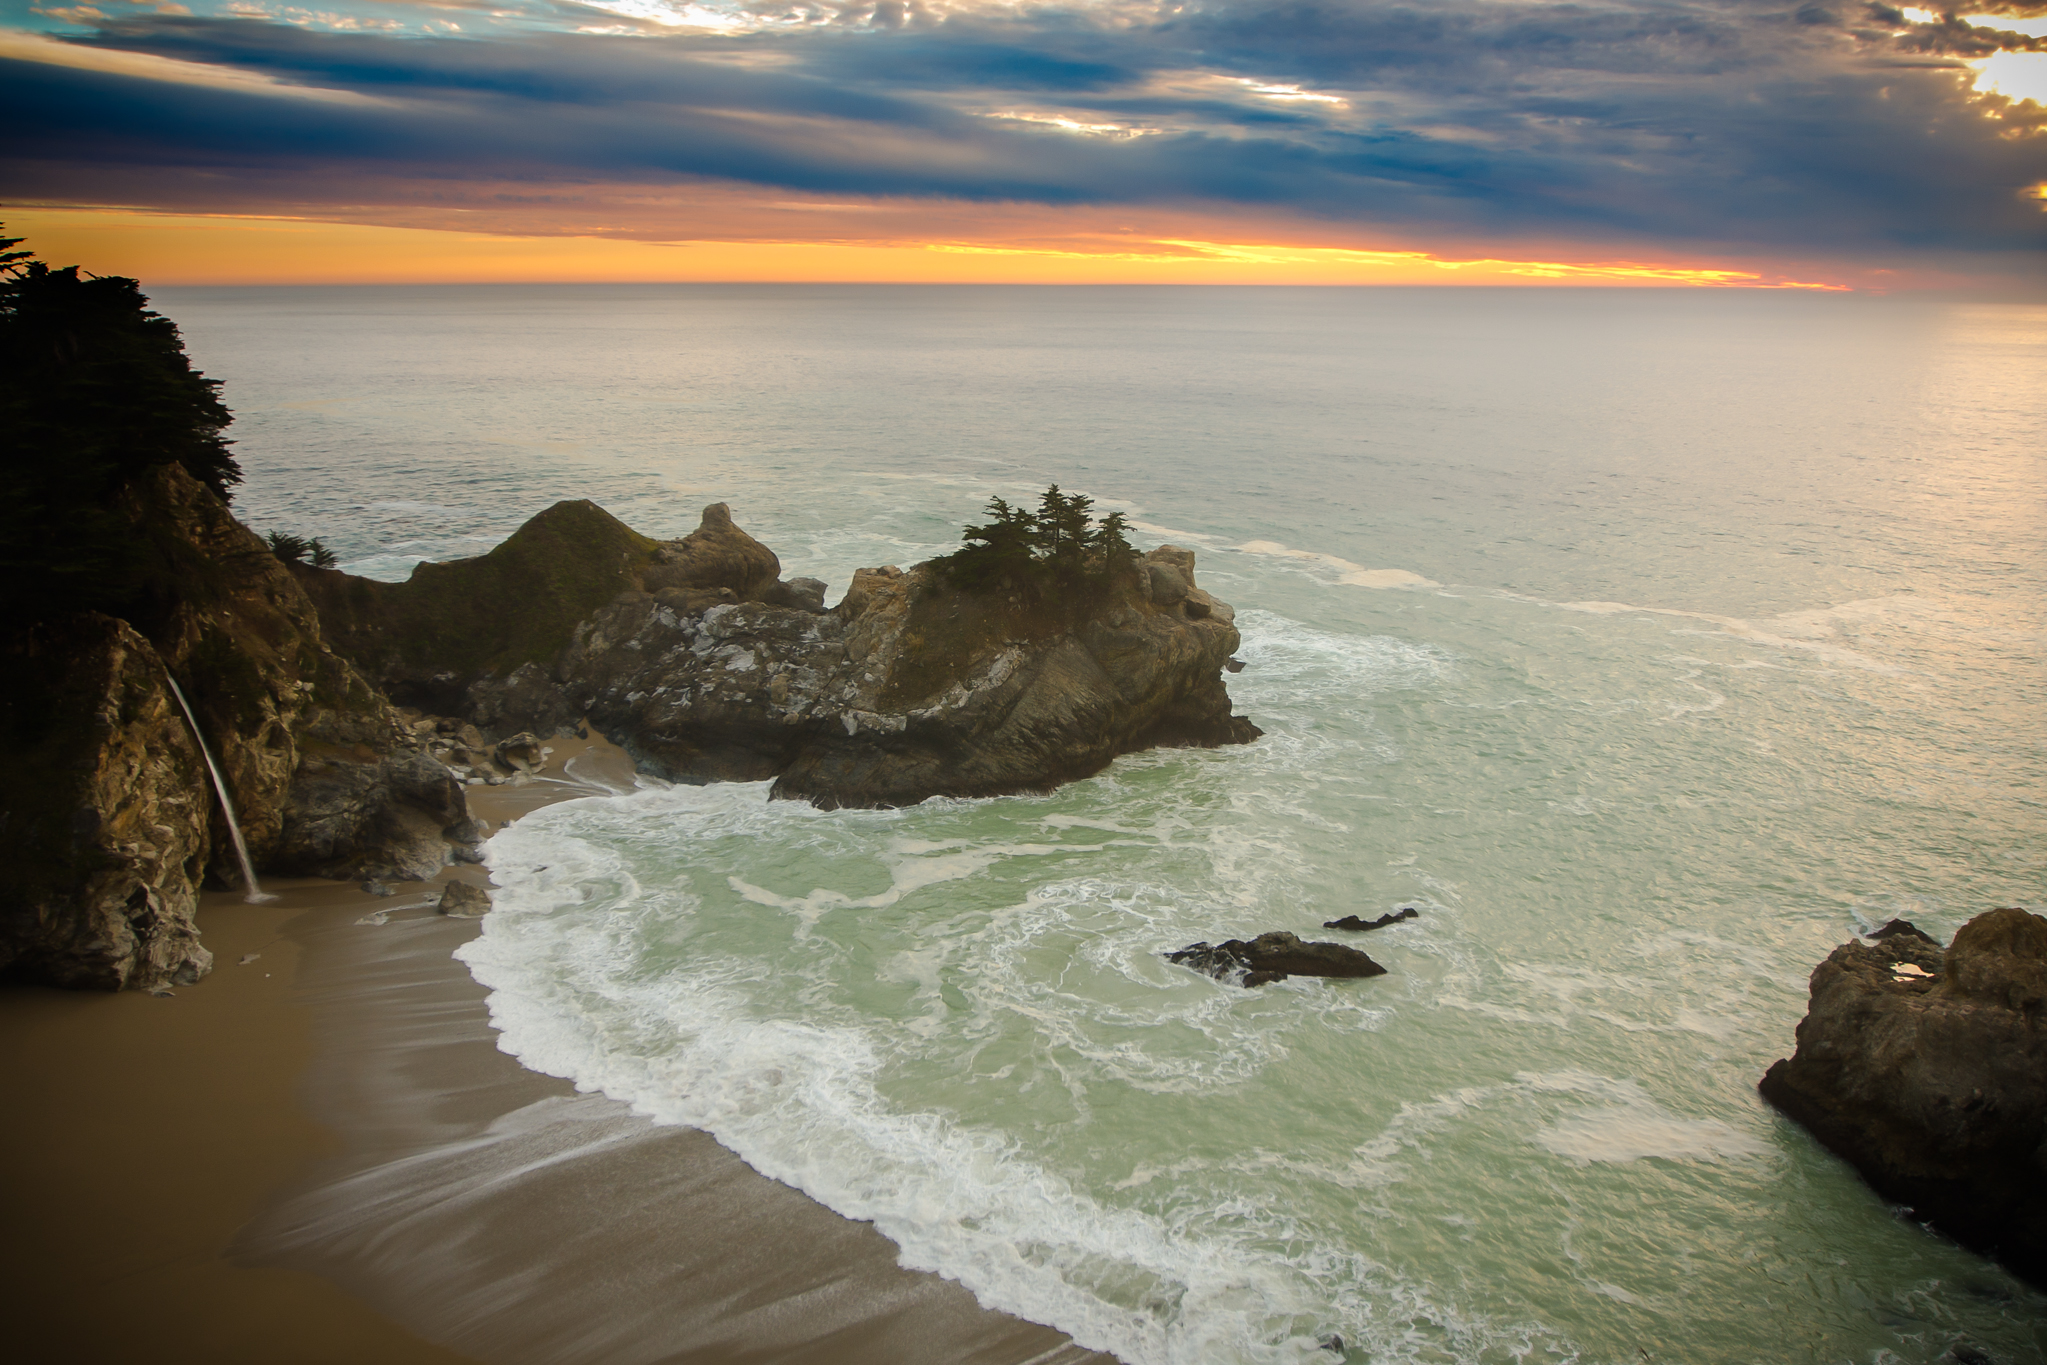 McWay falls is one of the primary attractions on the california coast and Big Sur. this image was made at sunset.